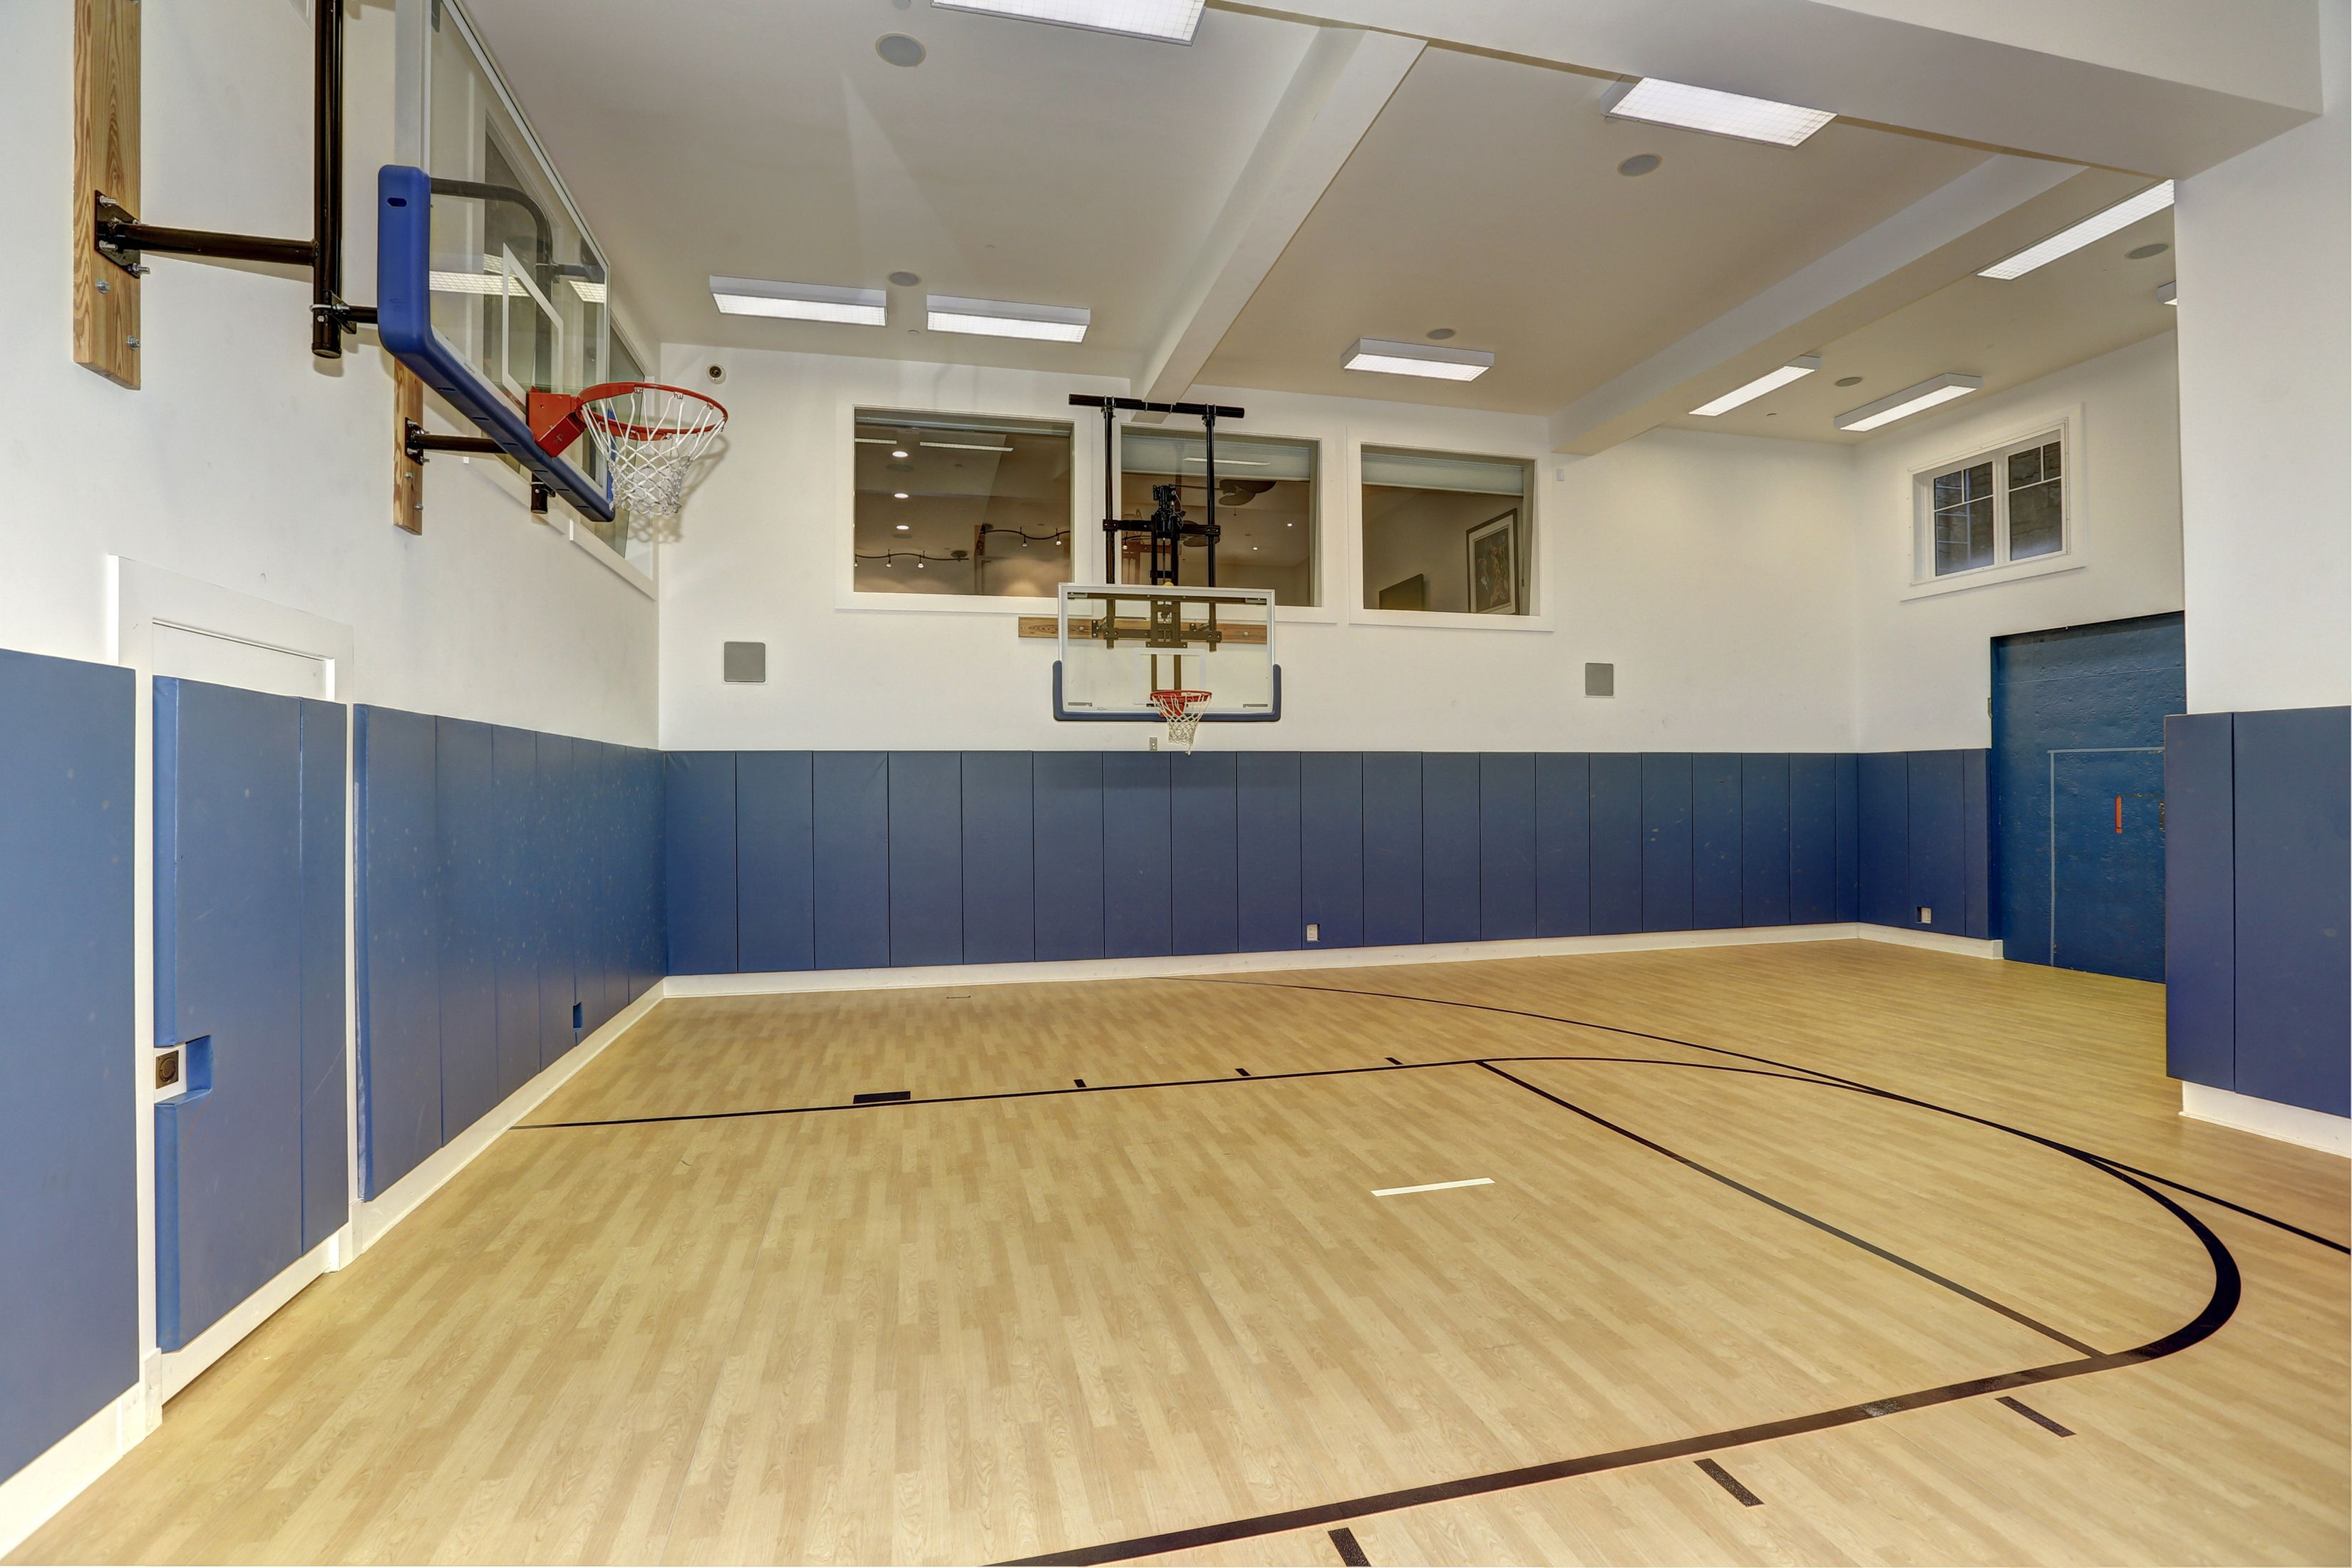 7700 Oldchester Road In Bethesda Maryland The Fully Finished Lower Level Is Enhanced By An Ind Indoor Basketball Court Guest Suite Indoor Basketball